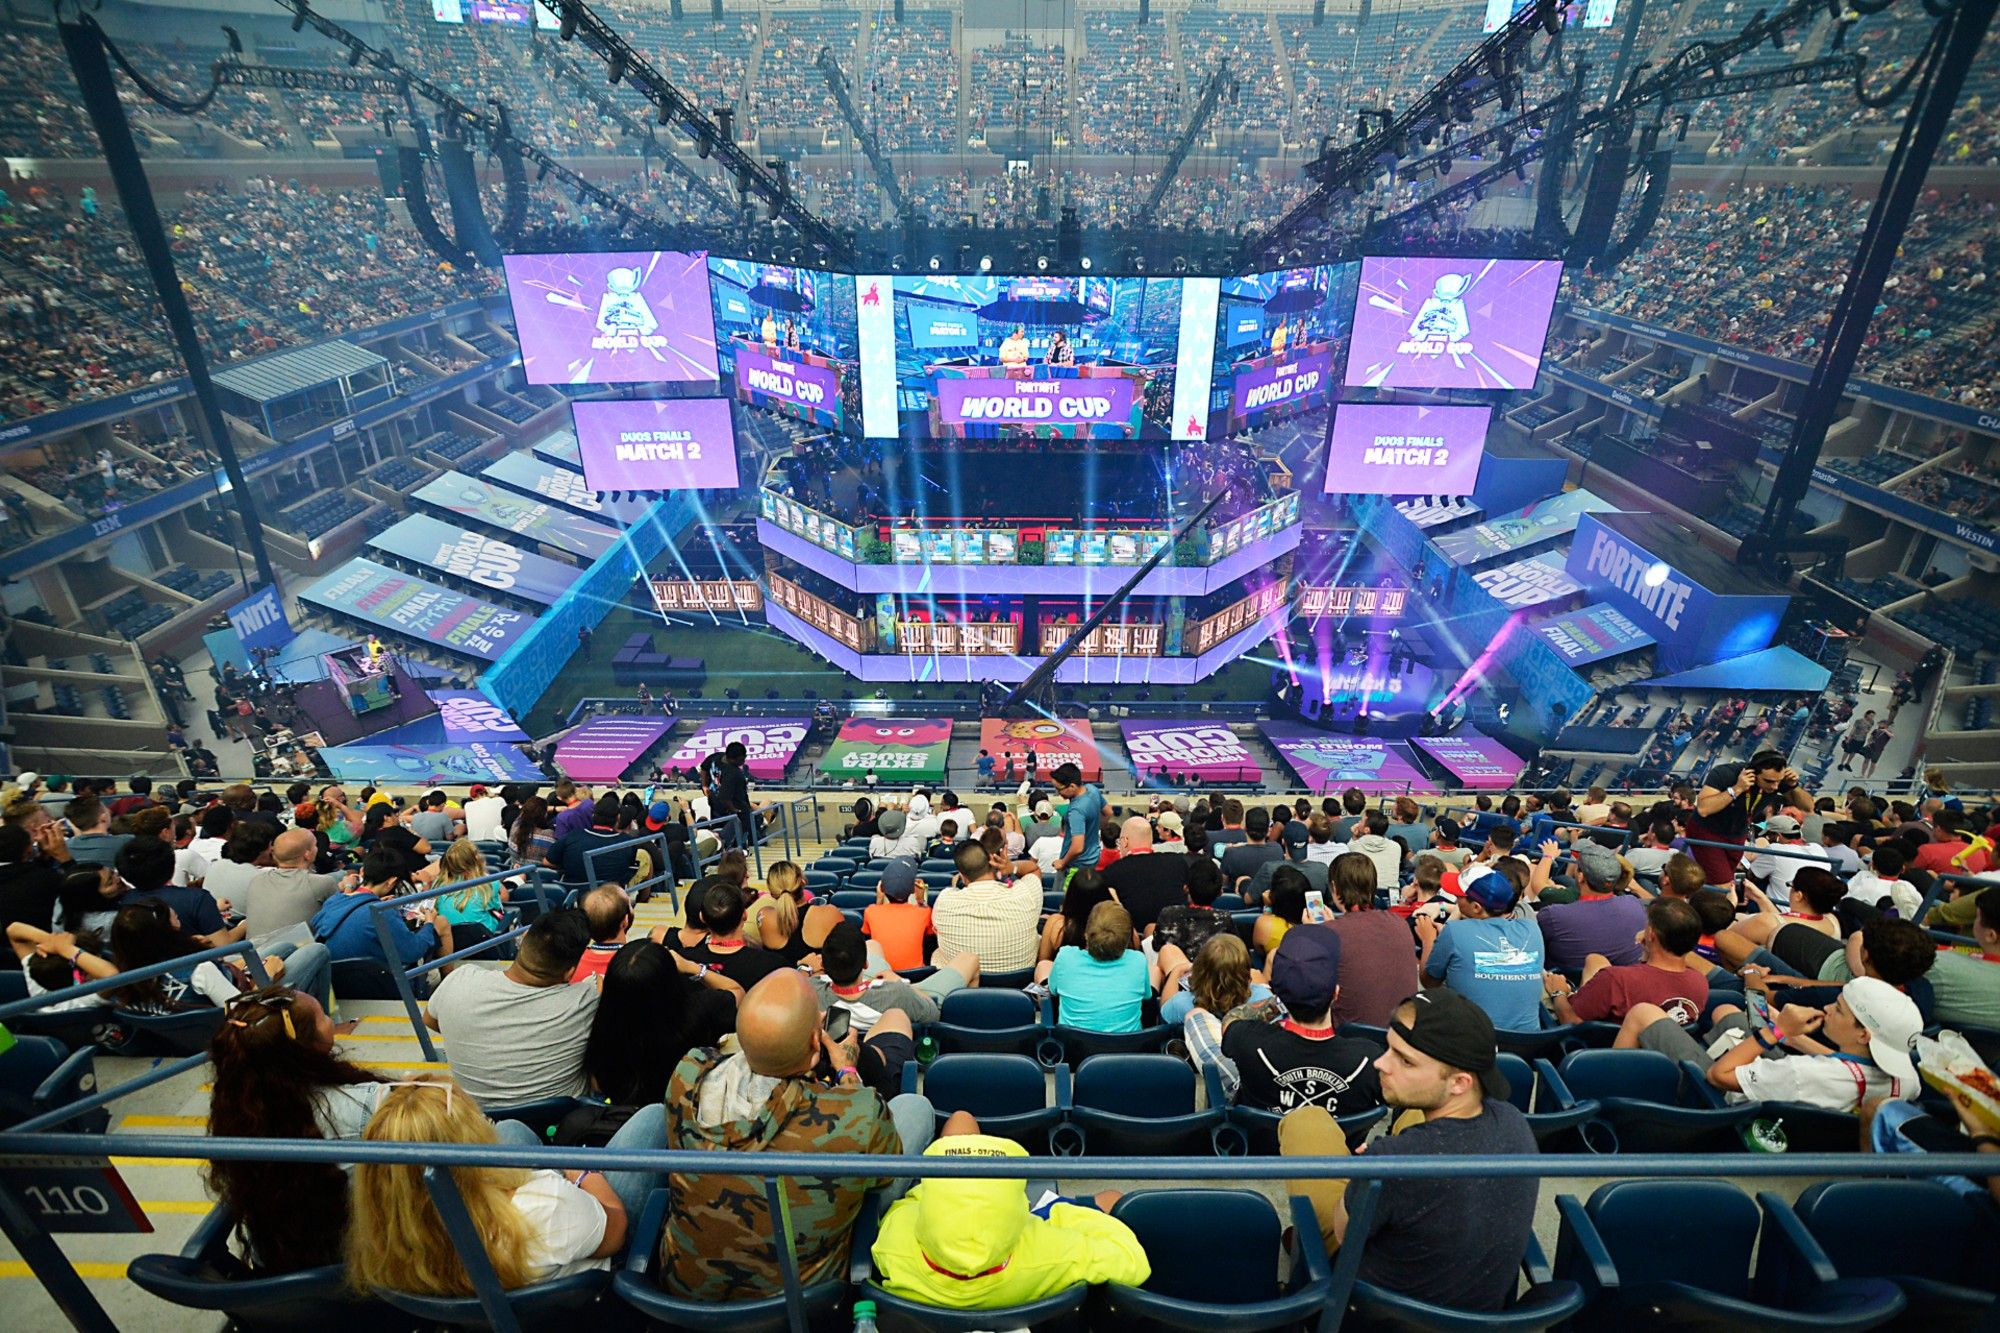 Fortnite Fans Fill Arthur Ashe Stadium For World Cup Competition World Cup World Fortnite